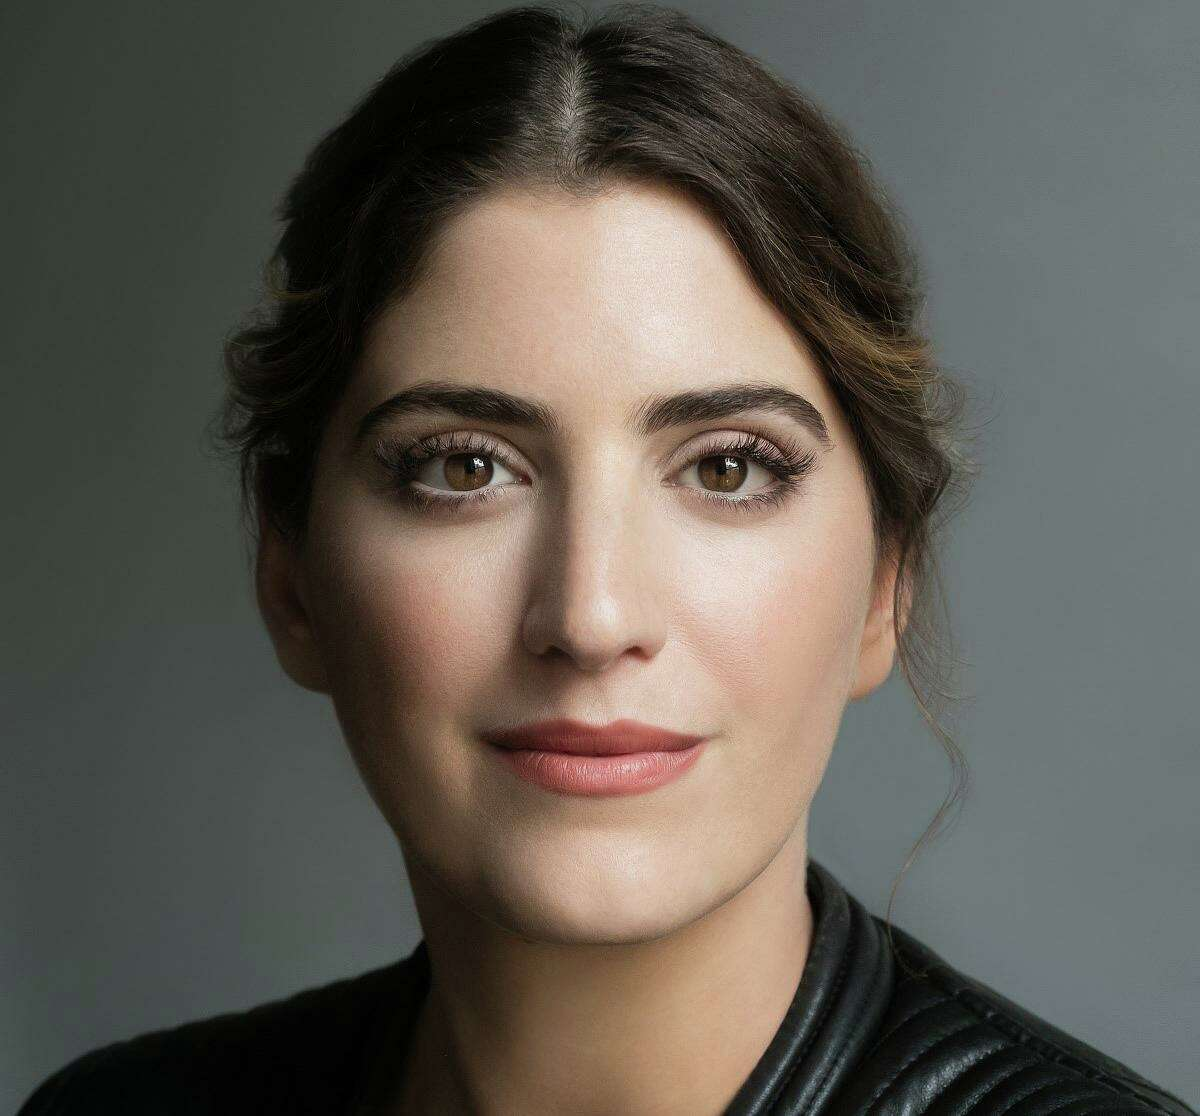 Suleika Jaouad will share the story of her battle against leukemia at the The story of her years-long illness, the plans it cut short and her newfound perspective will likely resonant with those who gather for the 2021 Center for HOPE Luncheon on Tuesday, June 1, which features a keynote speech by Jaouad.